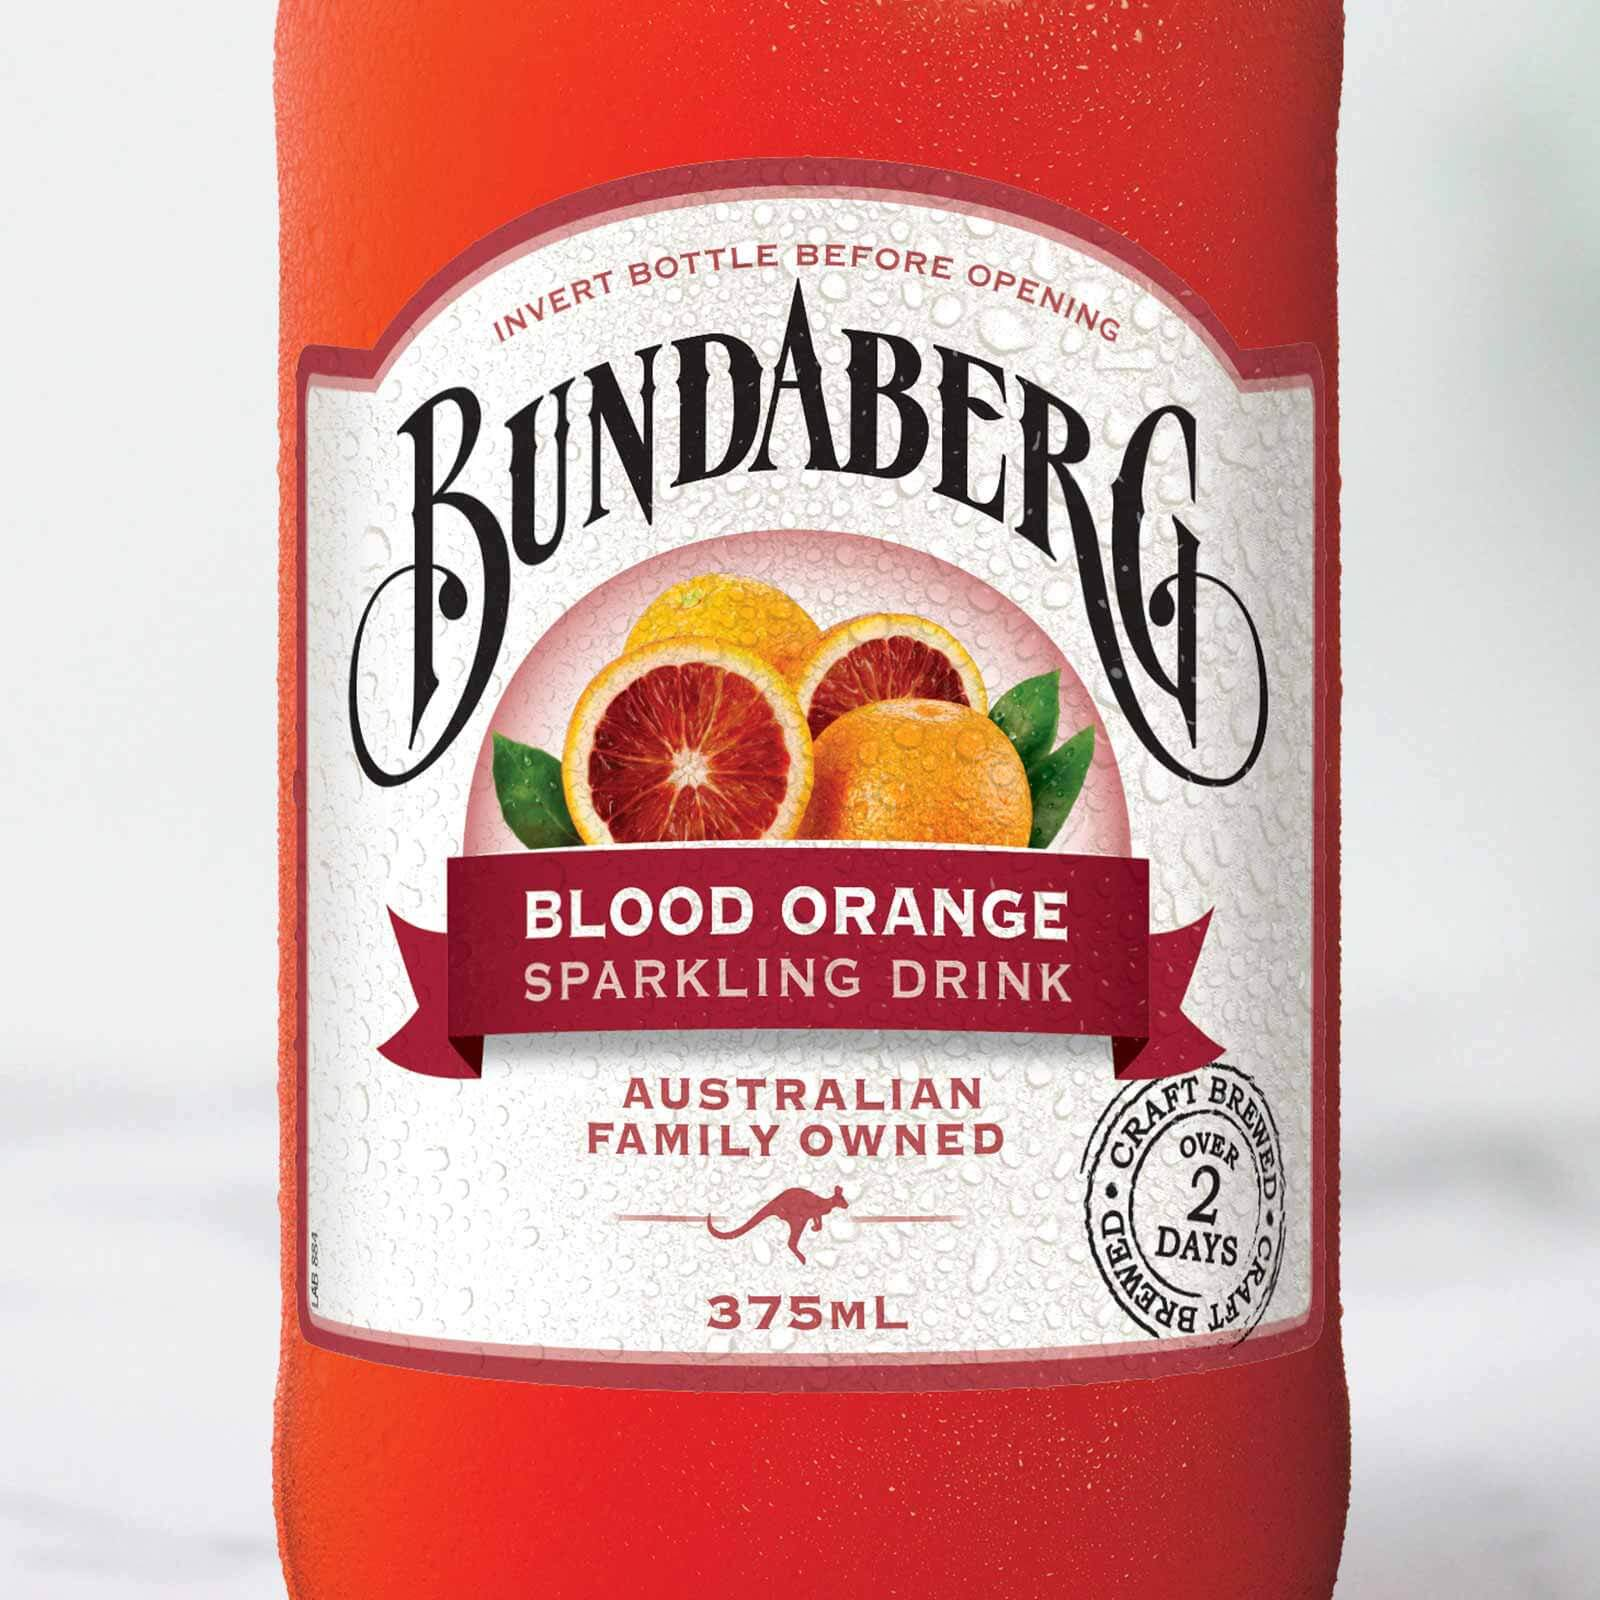 products-bundaberg-blood-orange-b